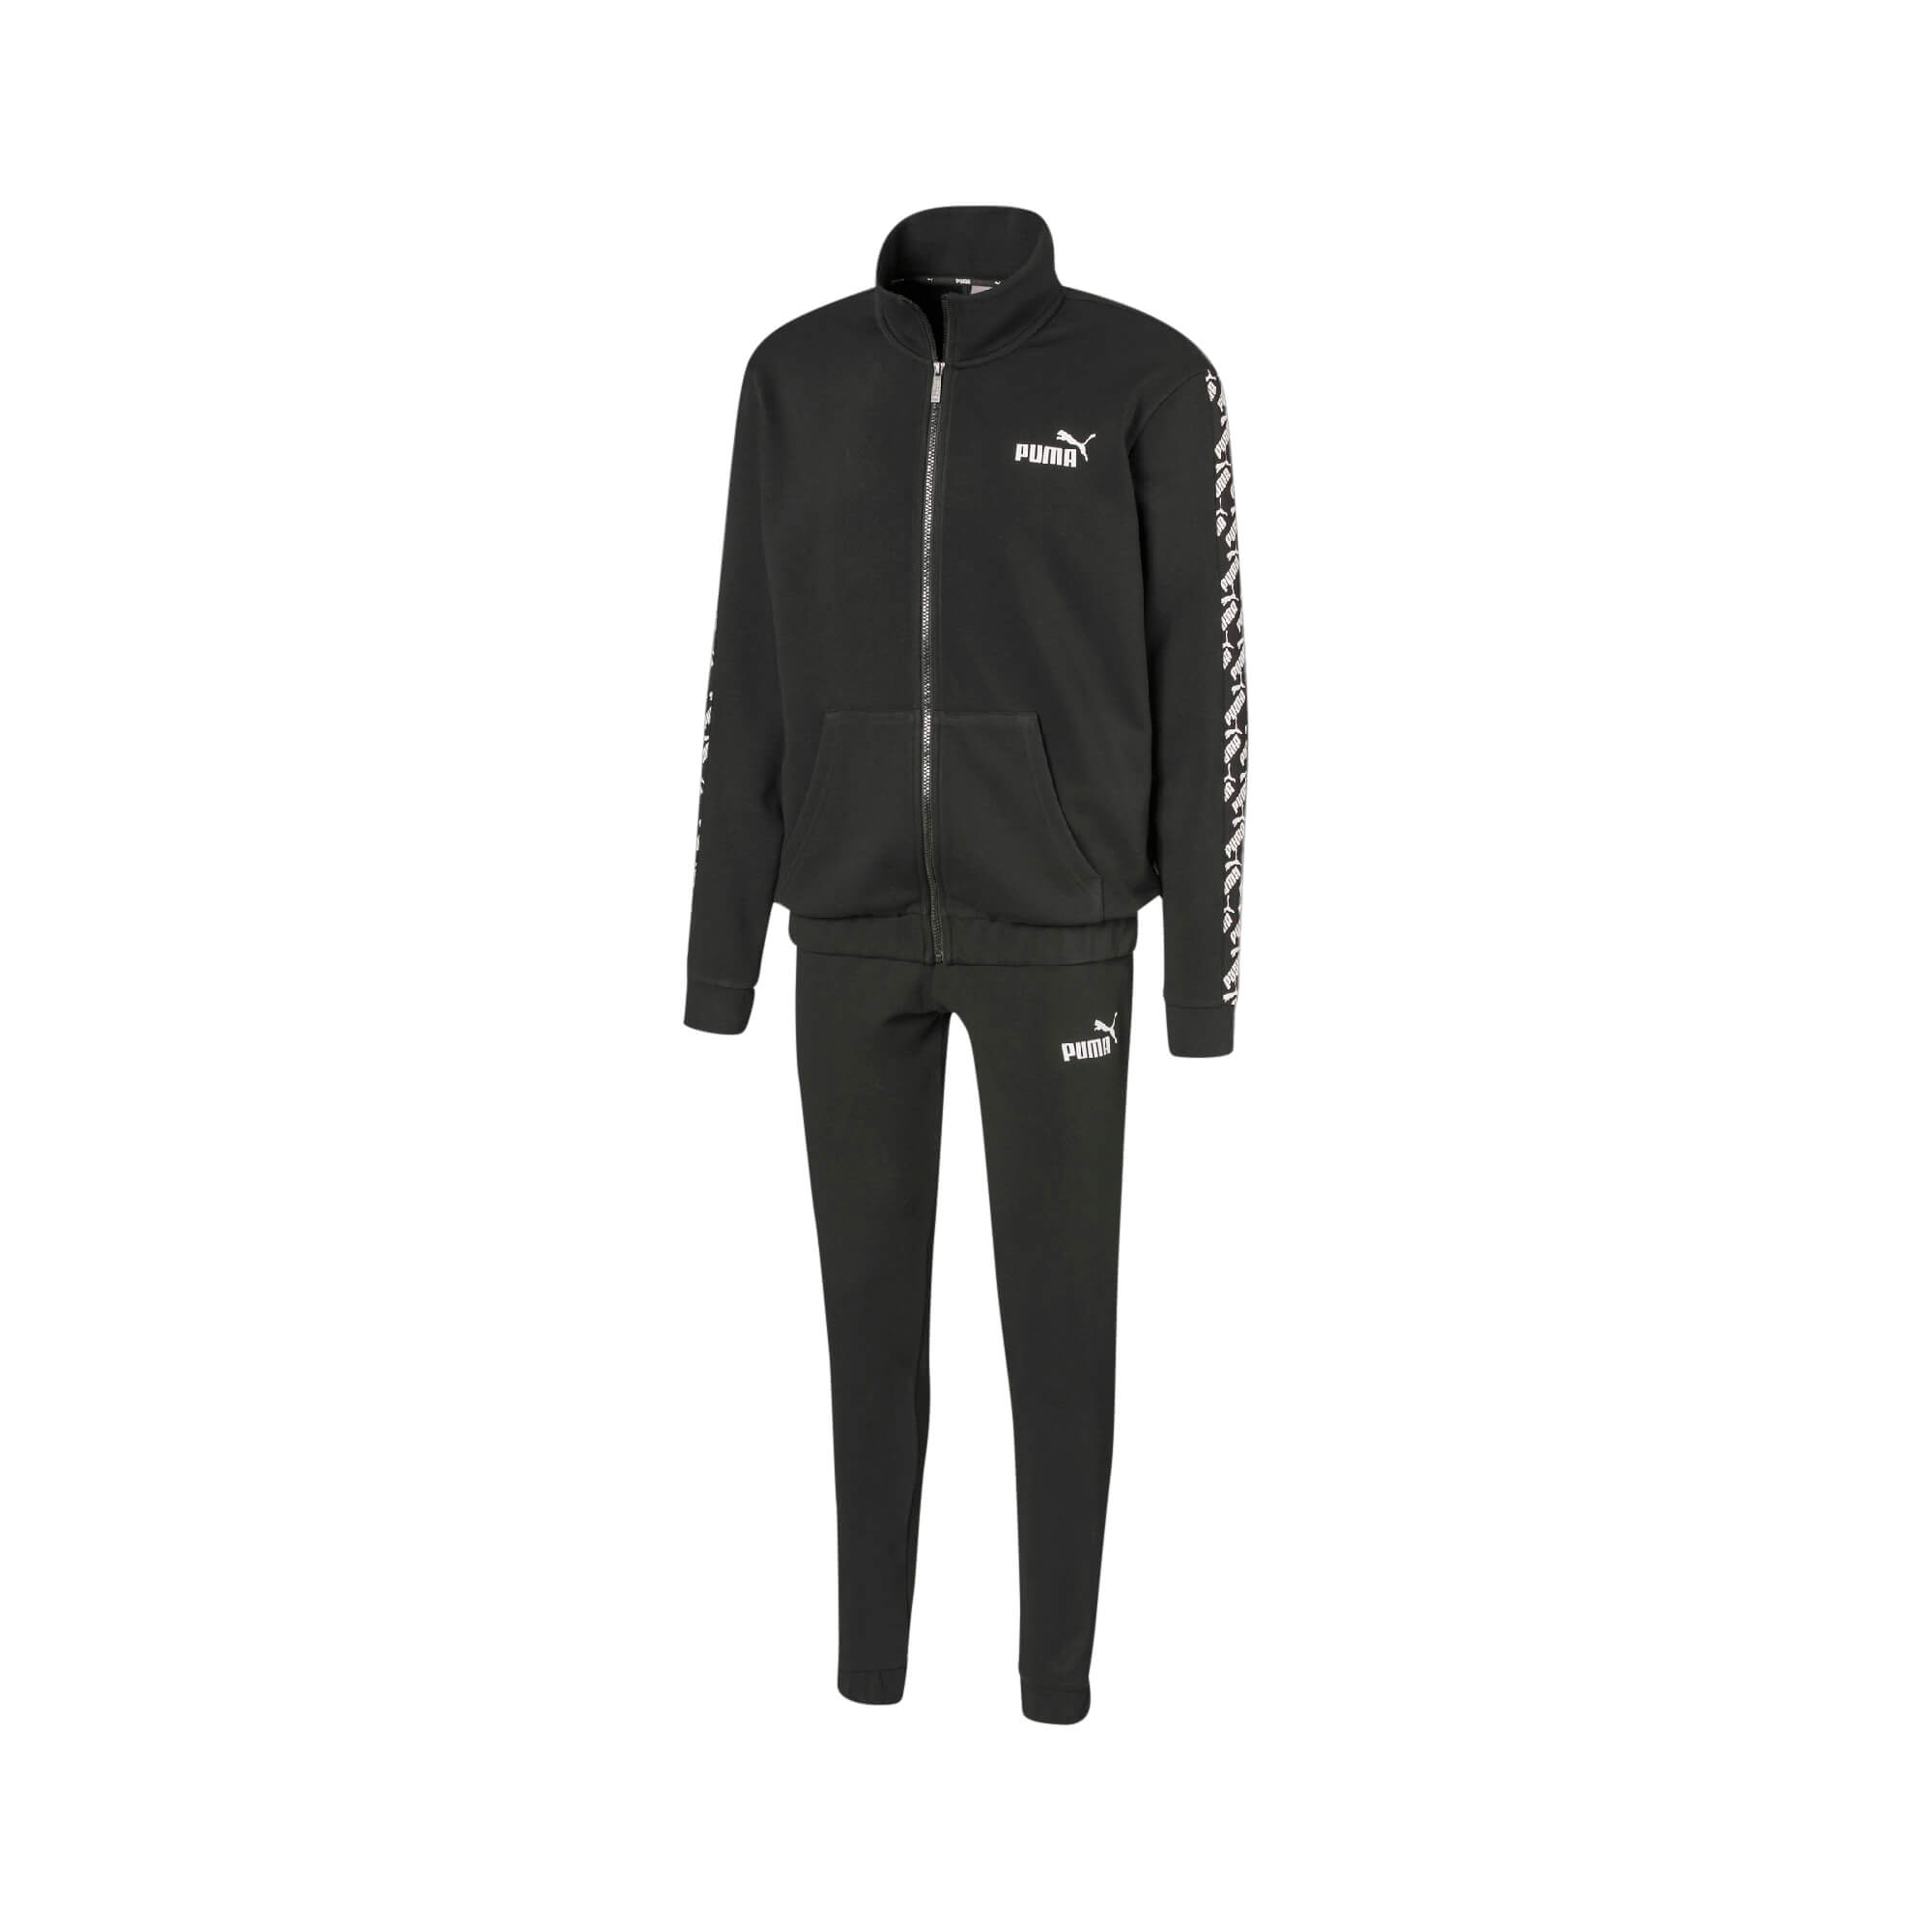 Amplified Track Suit